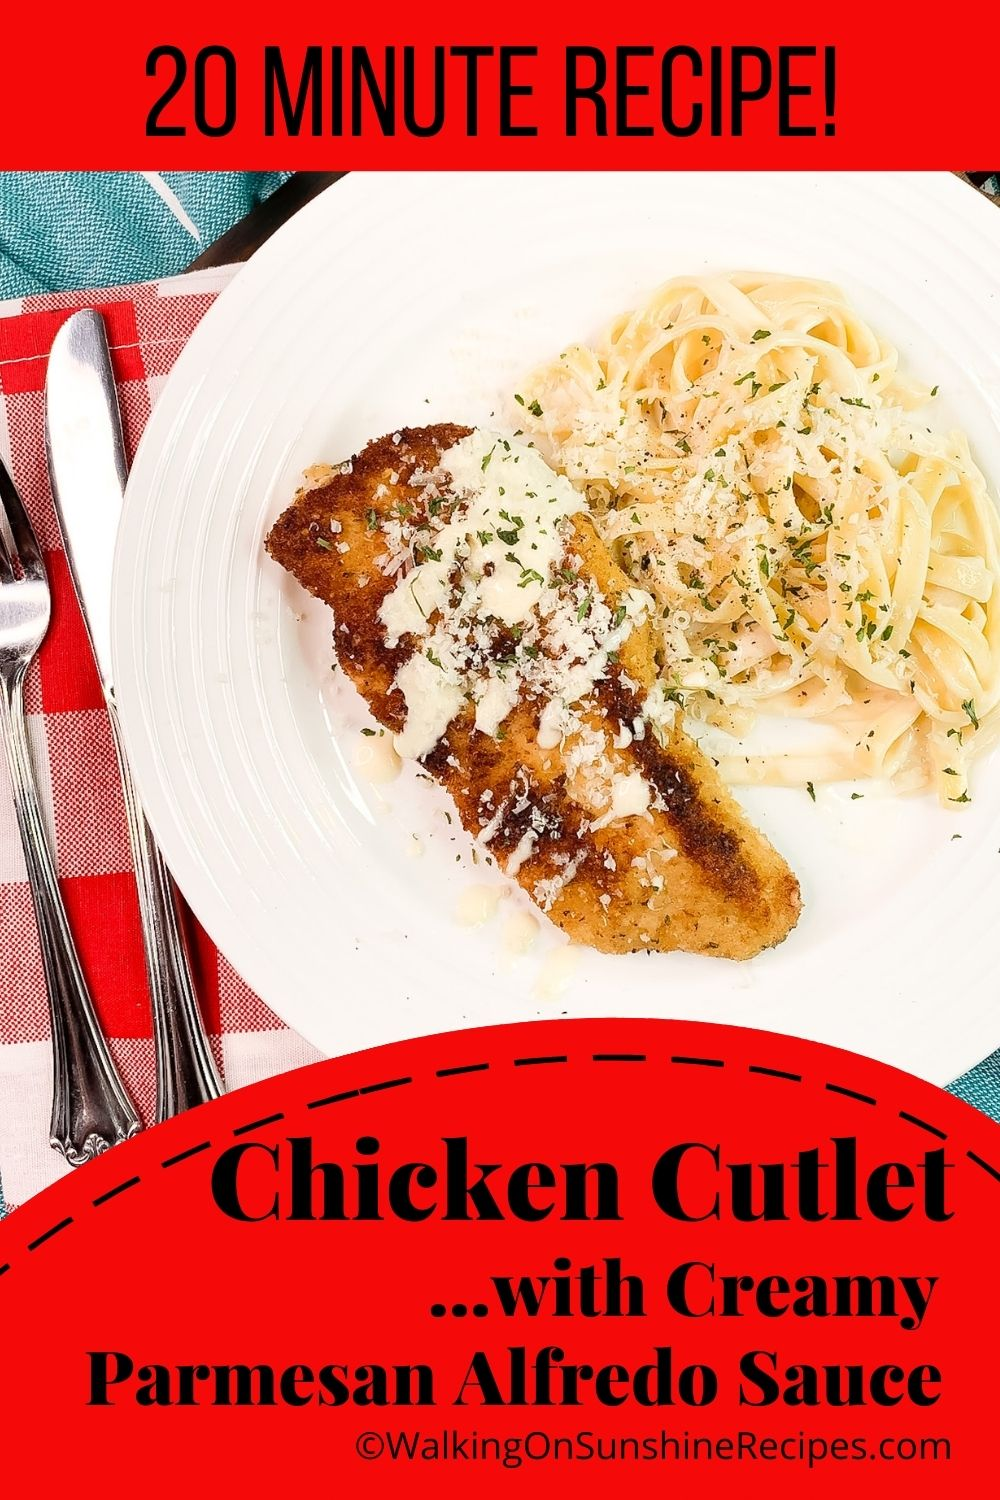 Fettuccine noodles with Alfredo sauce and crispy chicken cutlets.